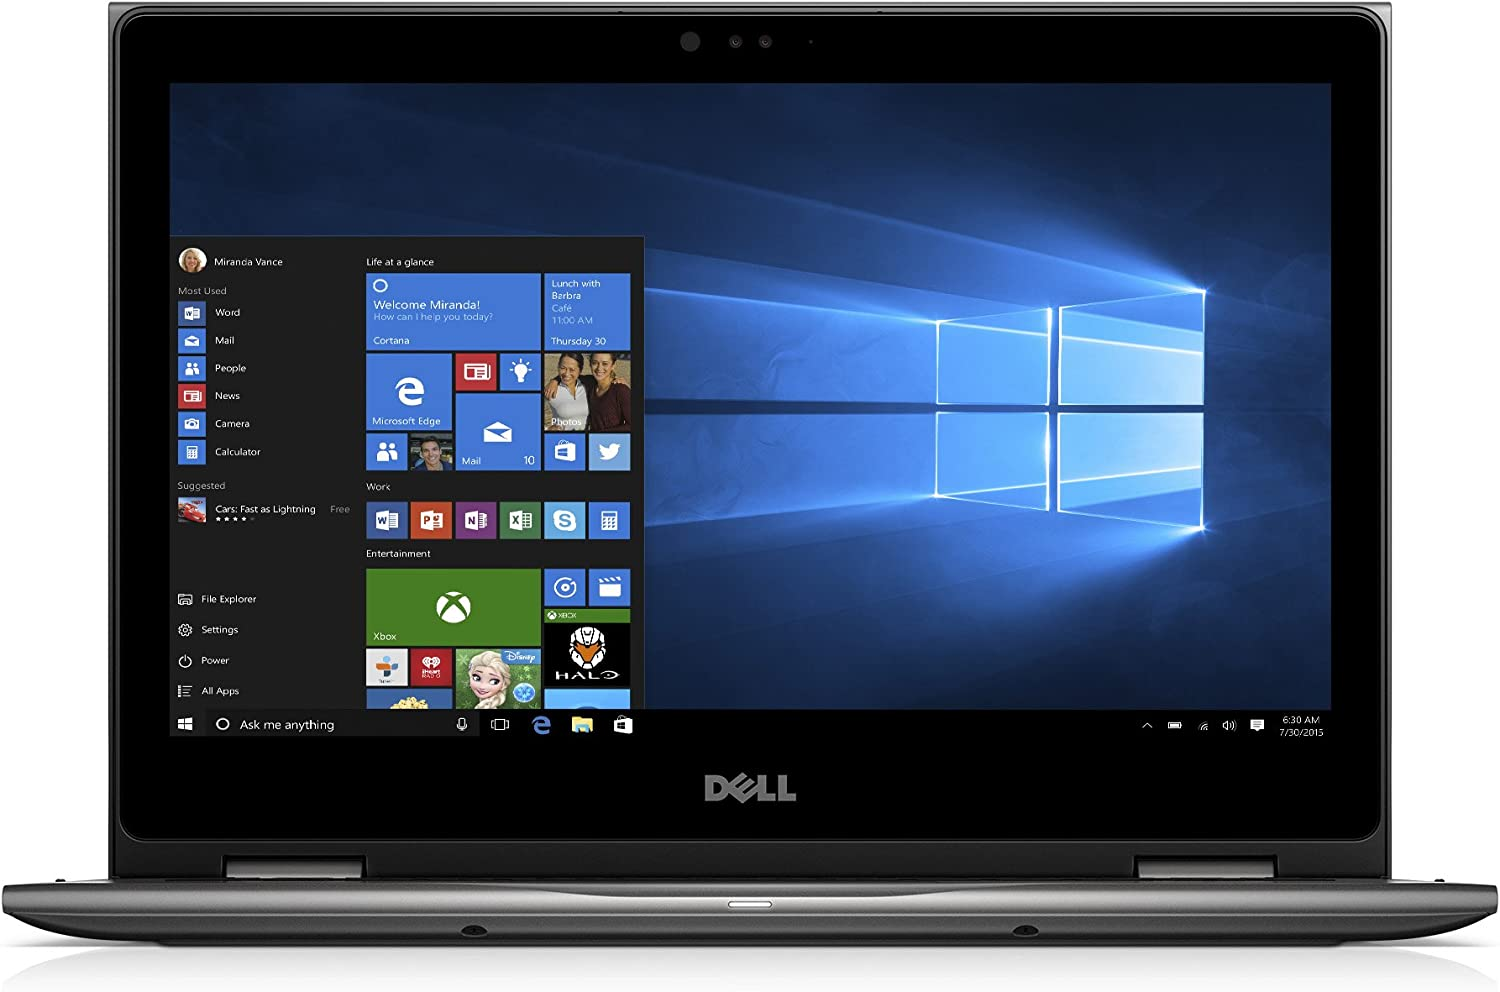 "Dell i5378-3031GRY-PUS Inspiron, 13.3"" 2-in-1 Laptop (7th Gen Core i3 (up to 2.40 GHz), 4GB, 1TB HDD), Intel HD Graphics 620, Theoretical Gray"